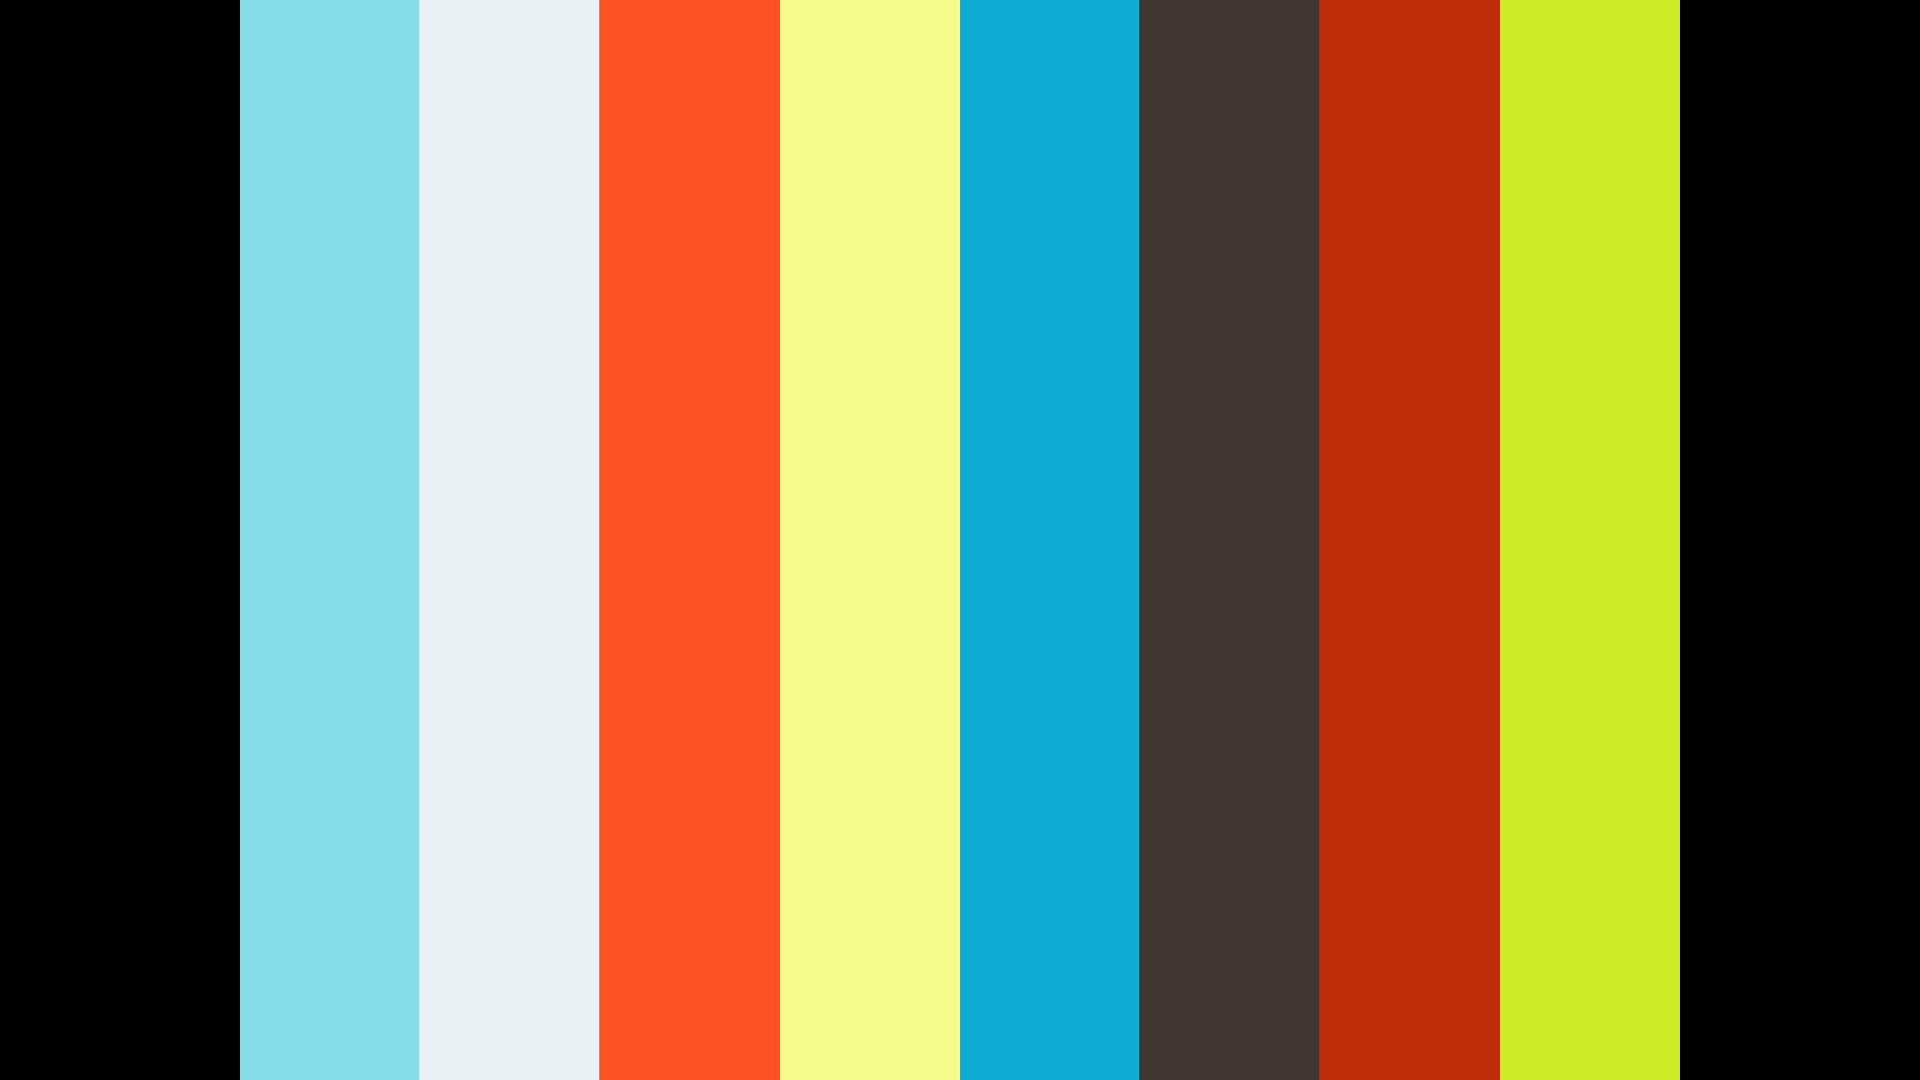 Through The Fire: Bethesda Church of God